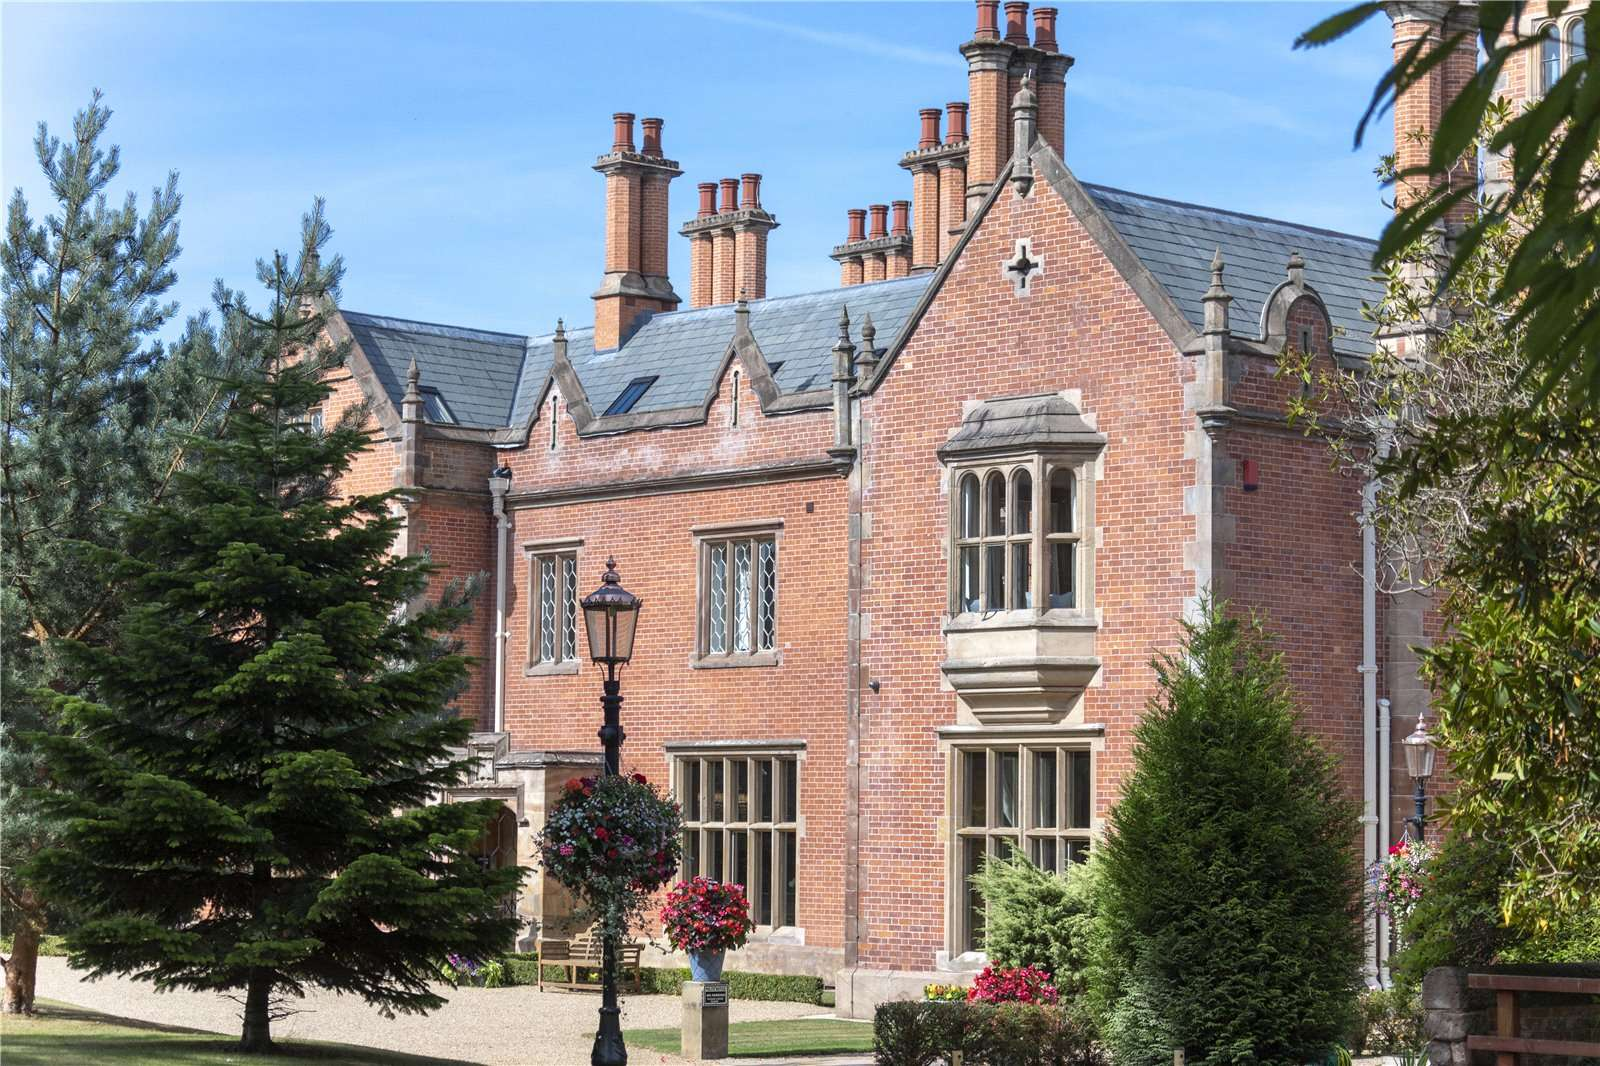 Norcliffe Hall Altrincham Road Wilmslow Cheshire Sk9 4lh Properties For Sale Savills